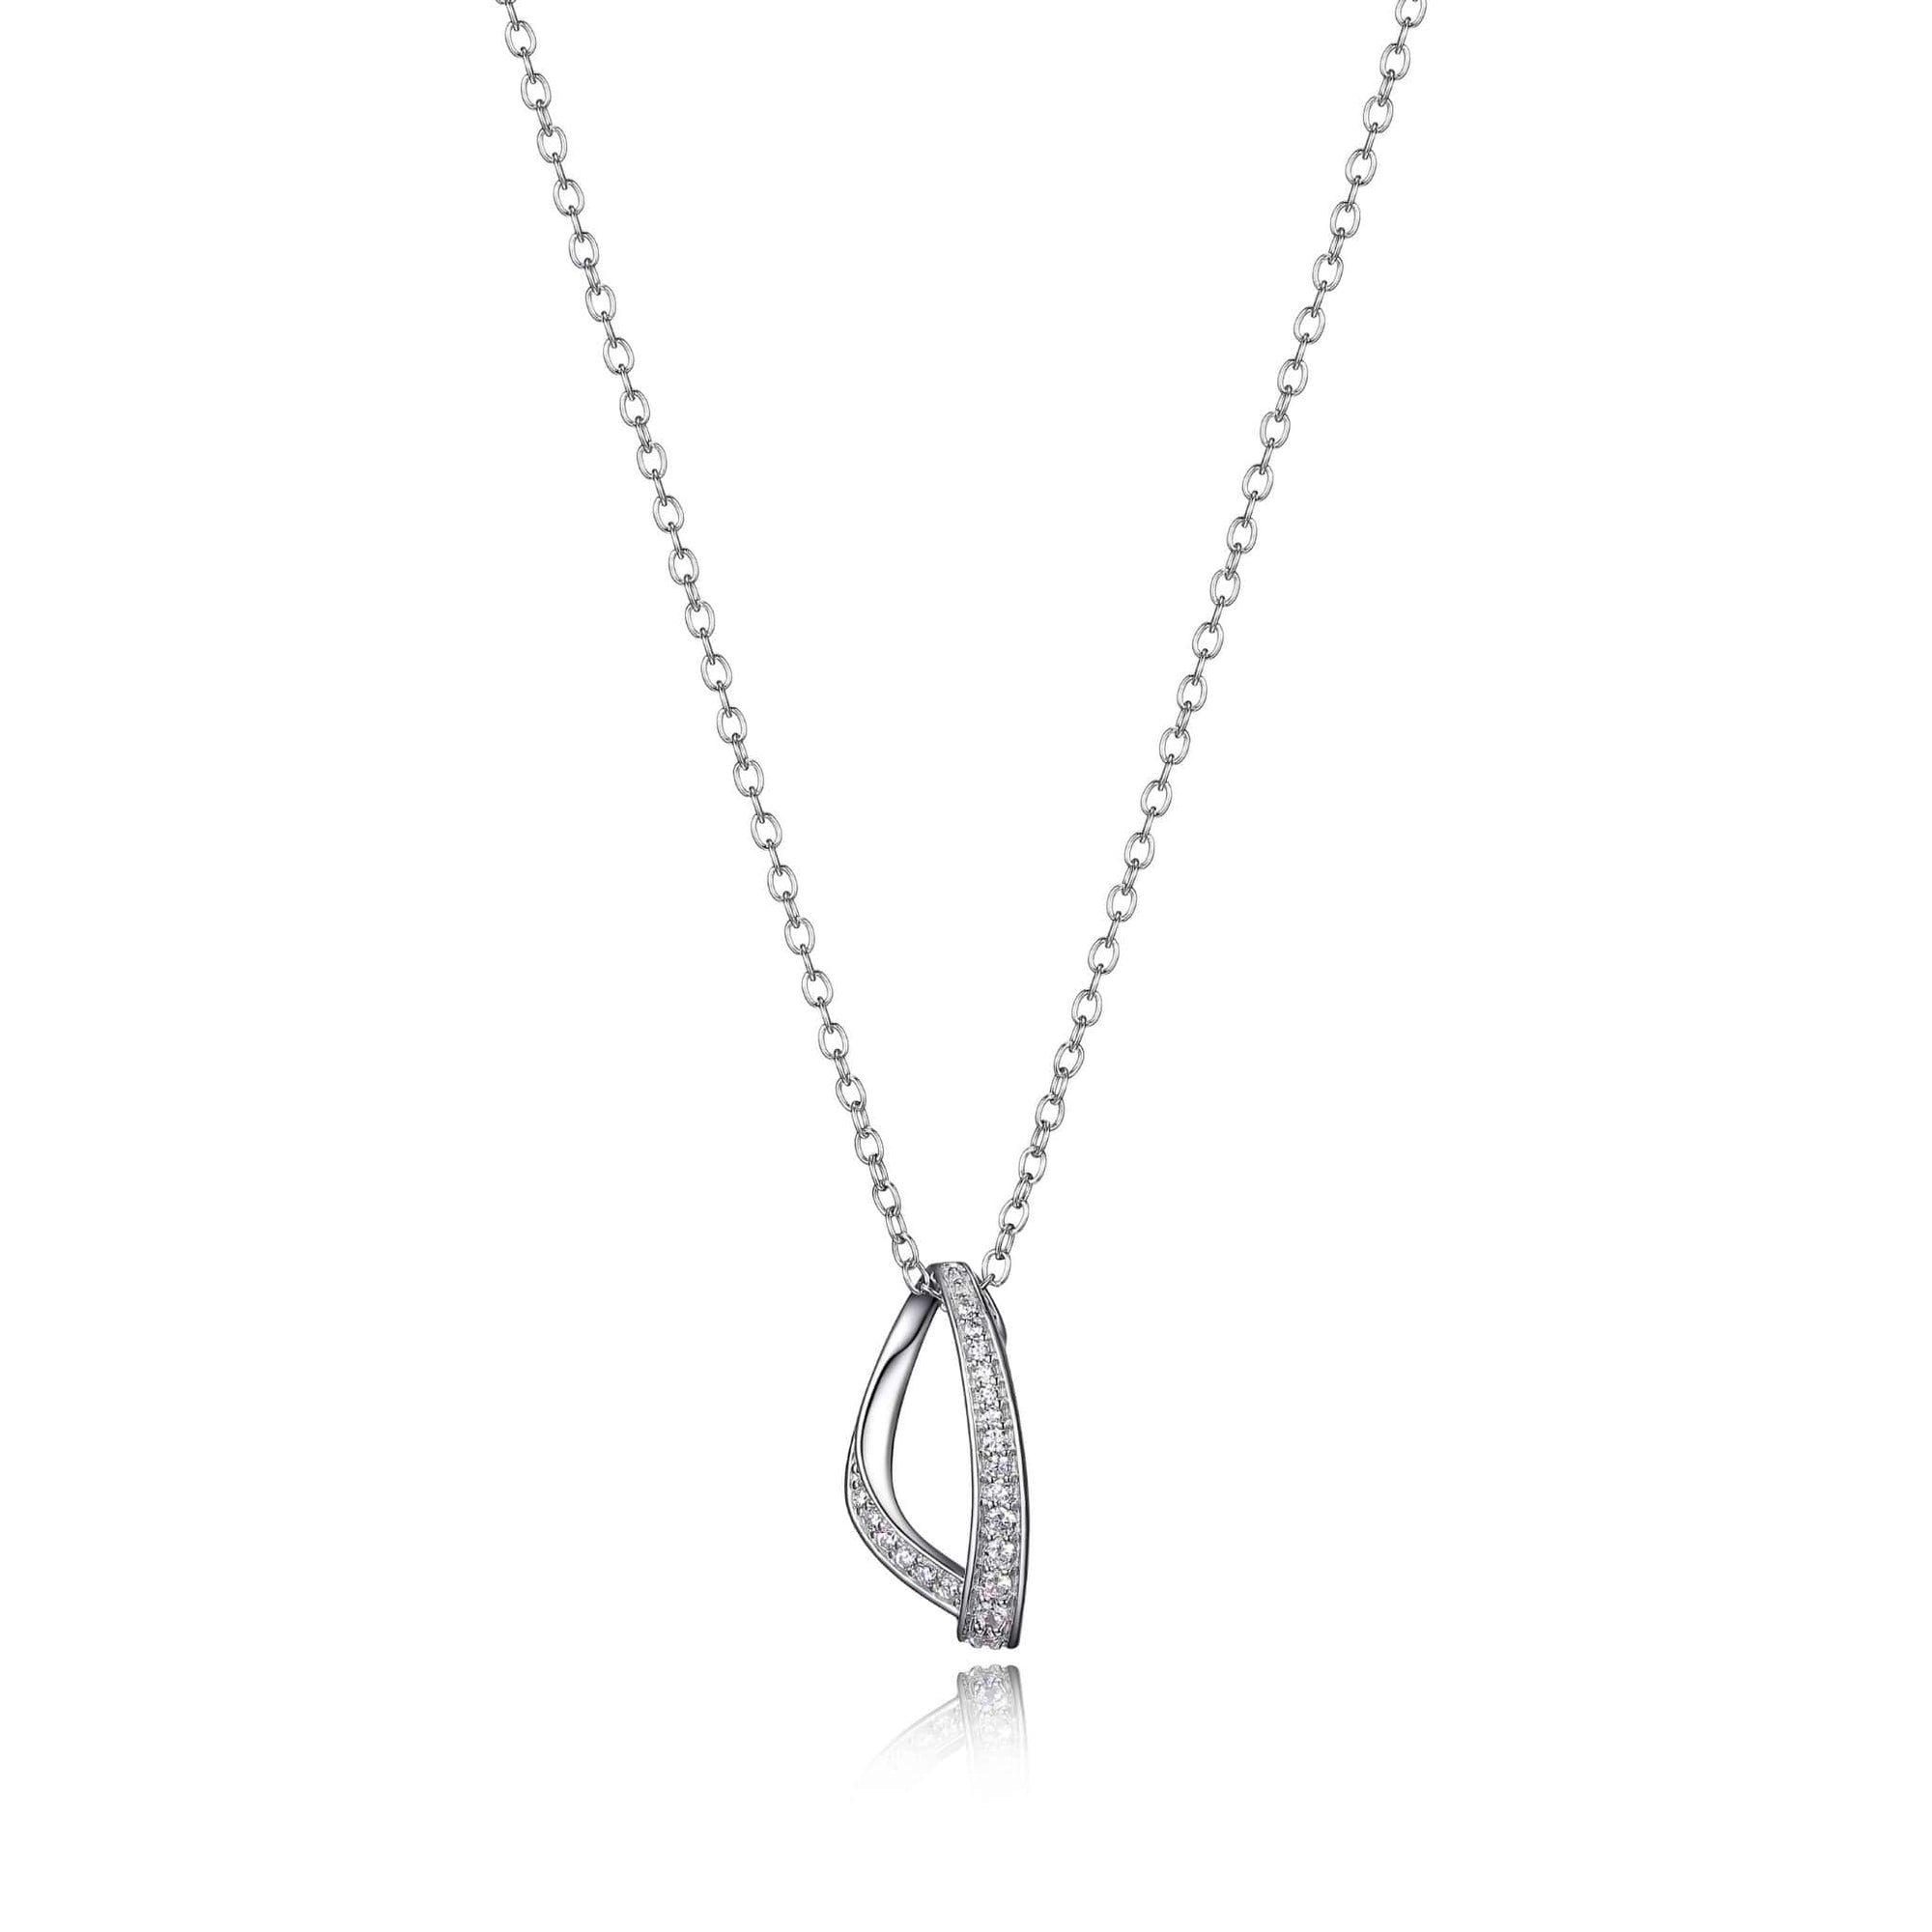 ELLE Scintillation Silver Necklace at Arman's Jewellers